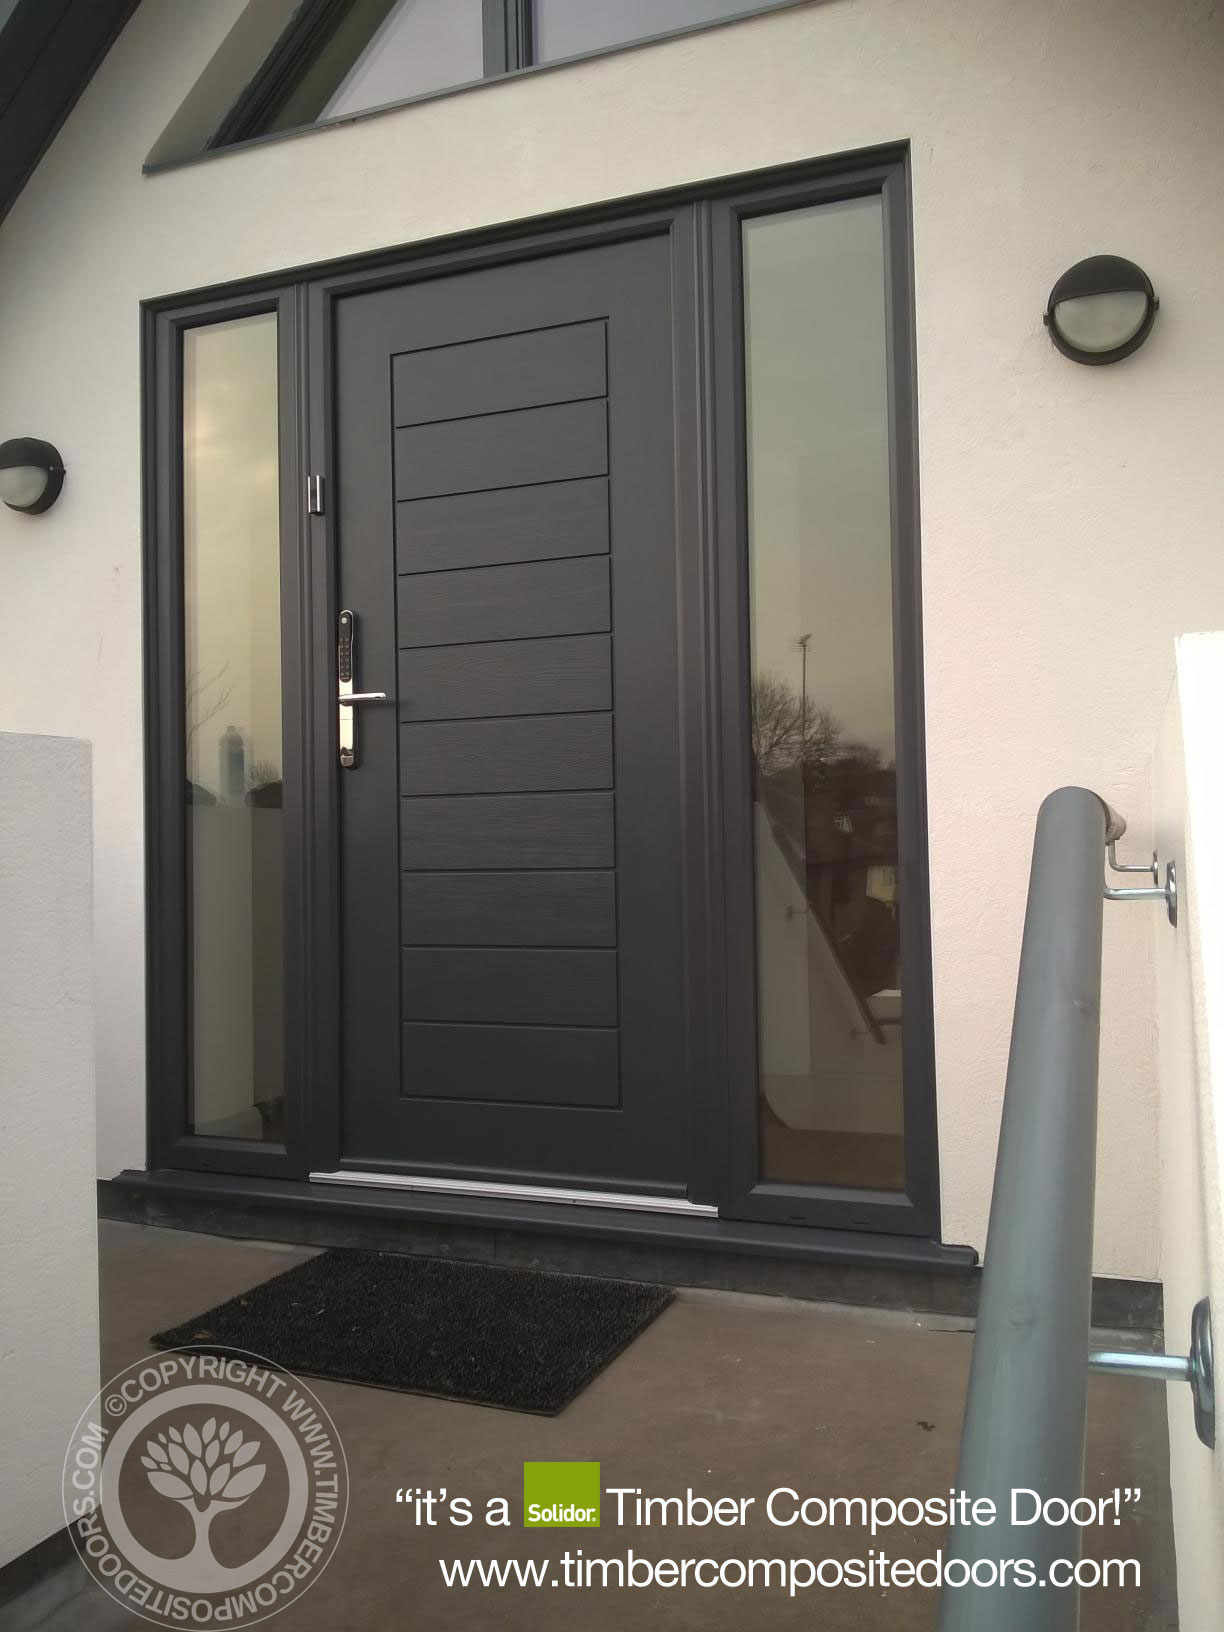 Solidor Composite Doors Are Better At The Right Price